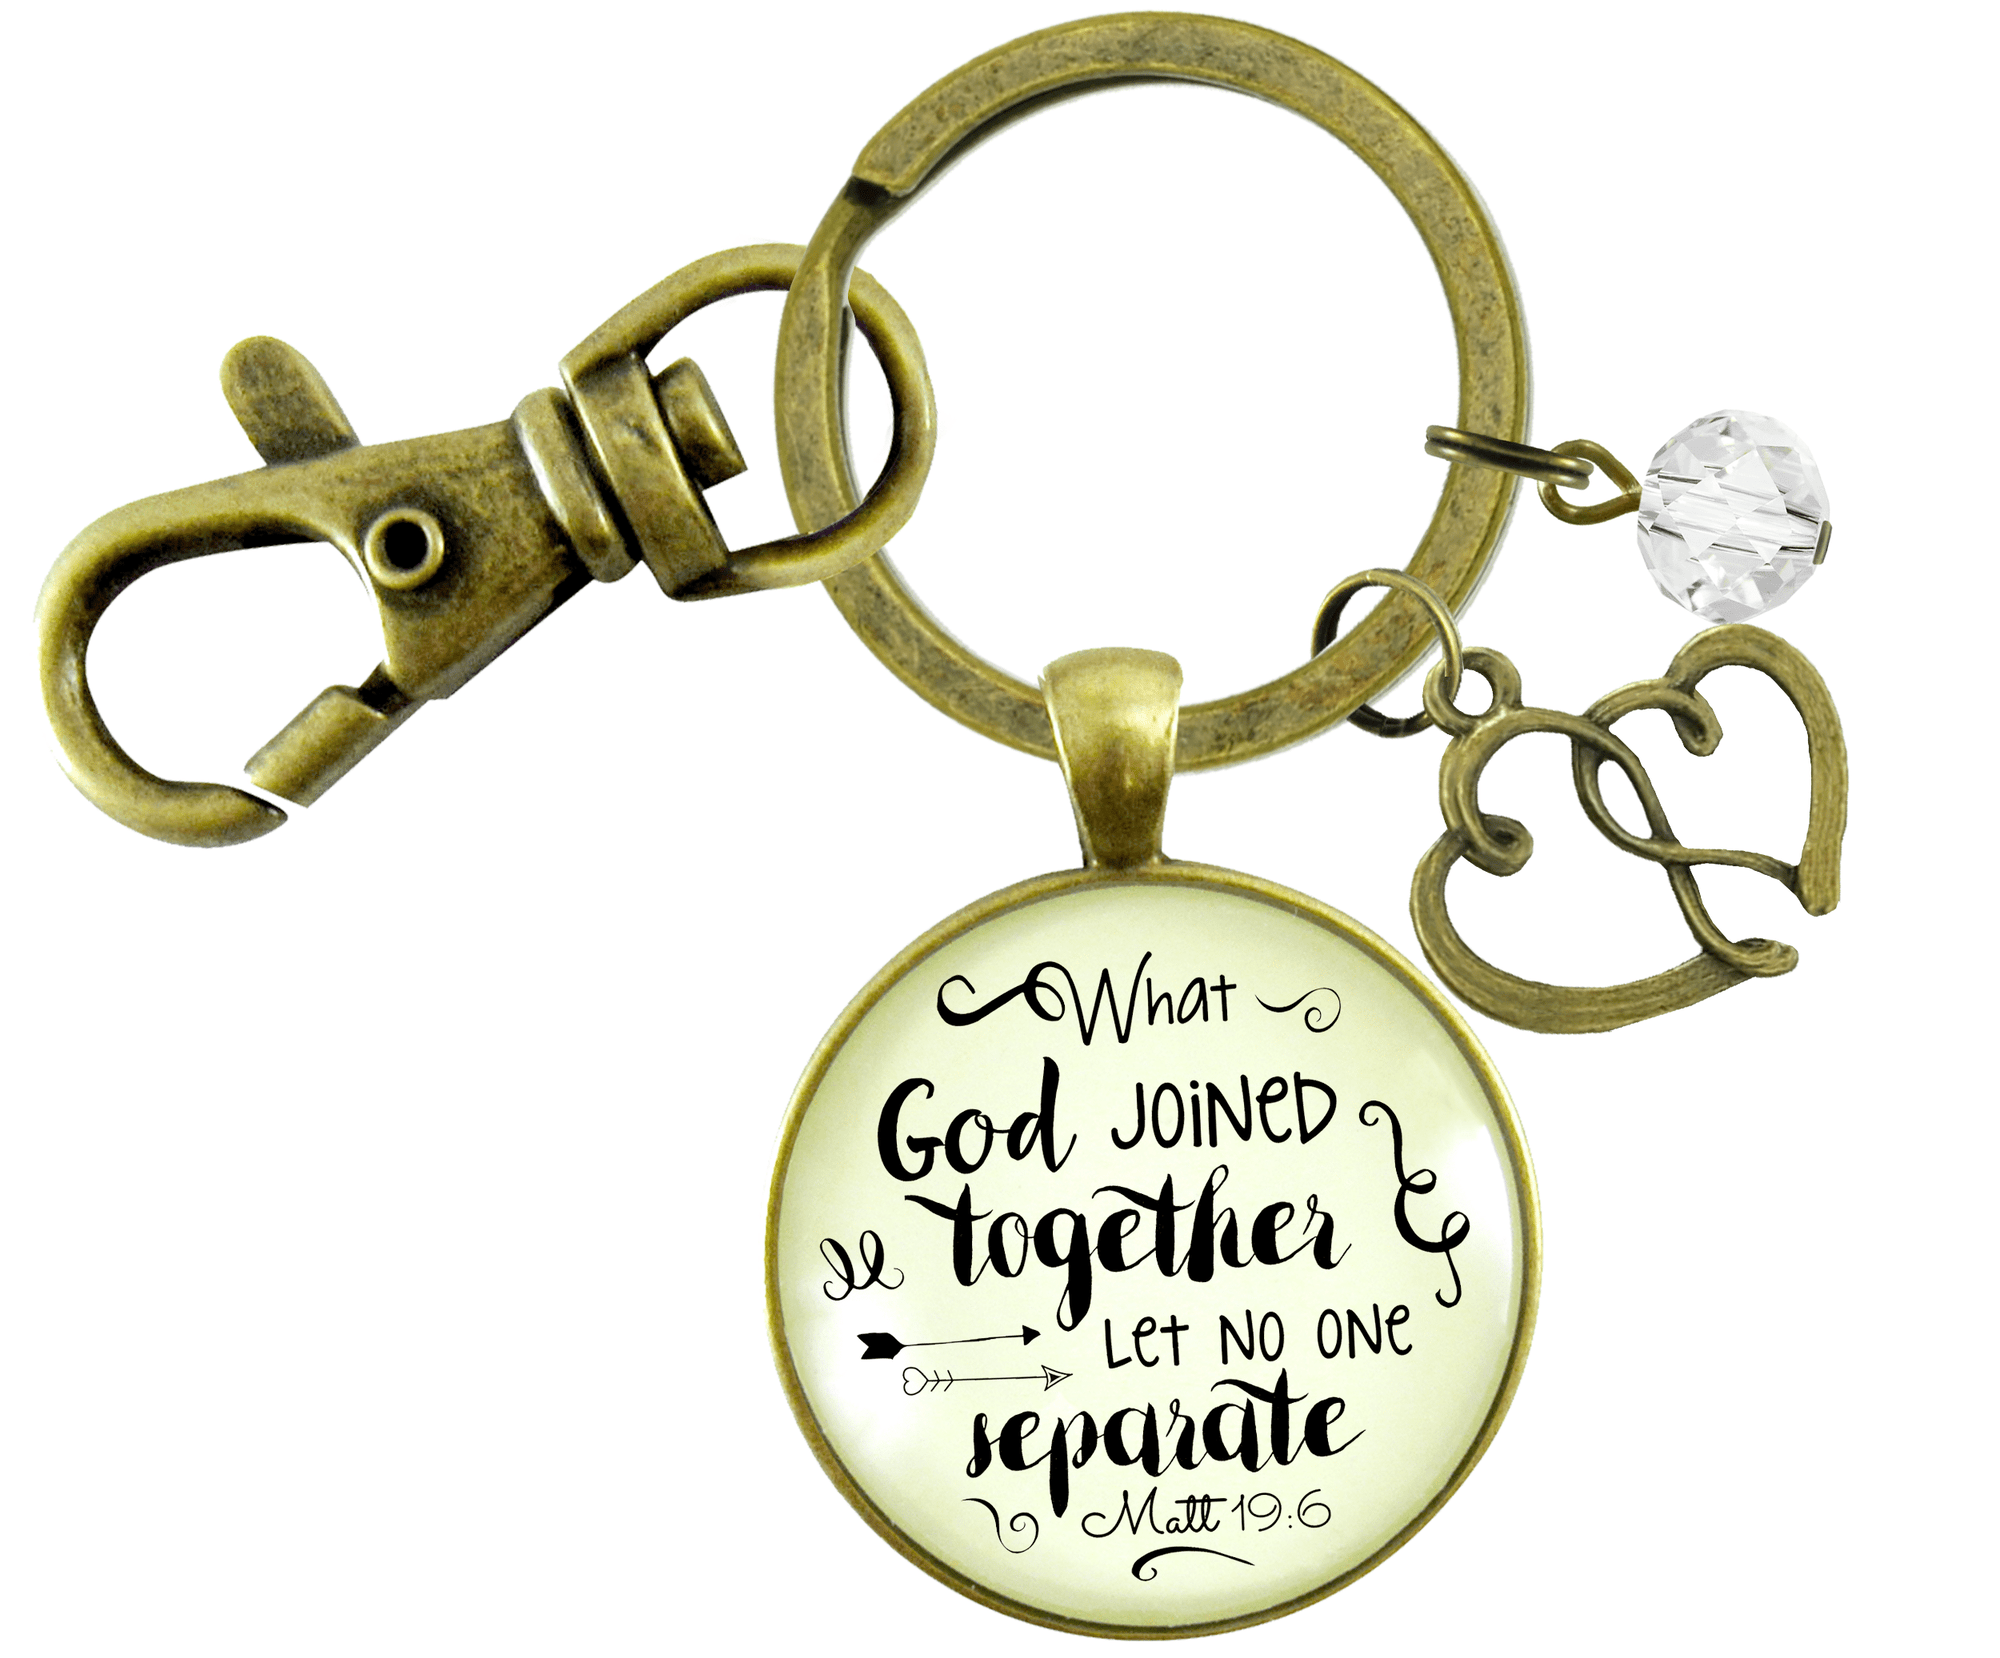 Woman of Faith Keychain Marriage Quote Bridal Shower Wedding Gift - Gutsy Goodness Handmade Jewelry